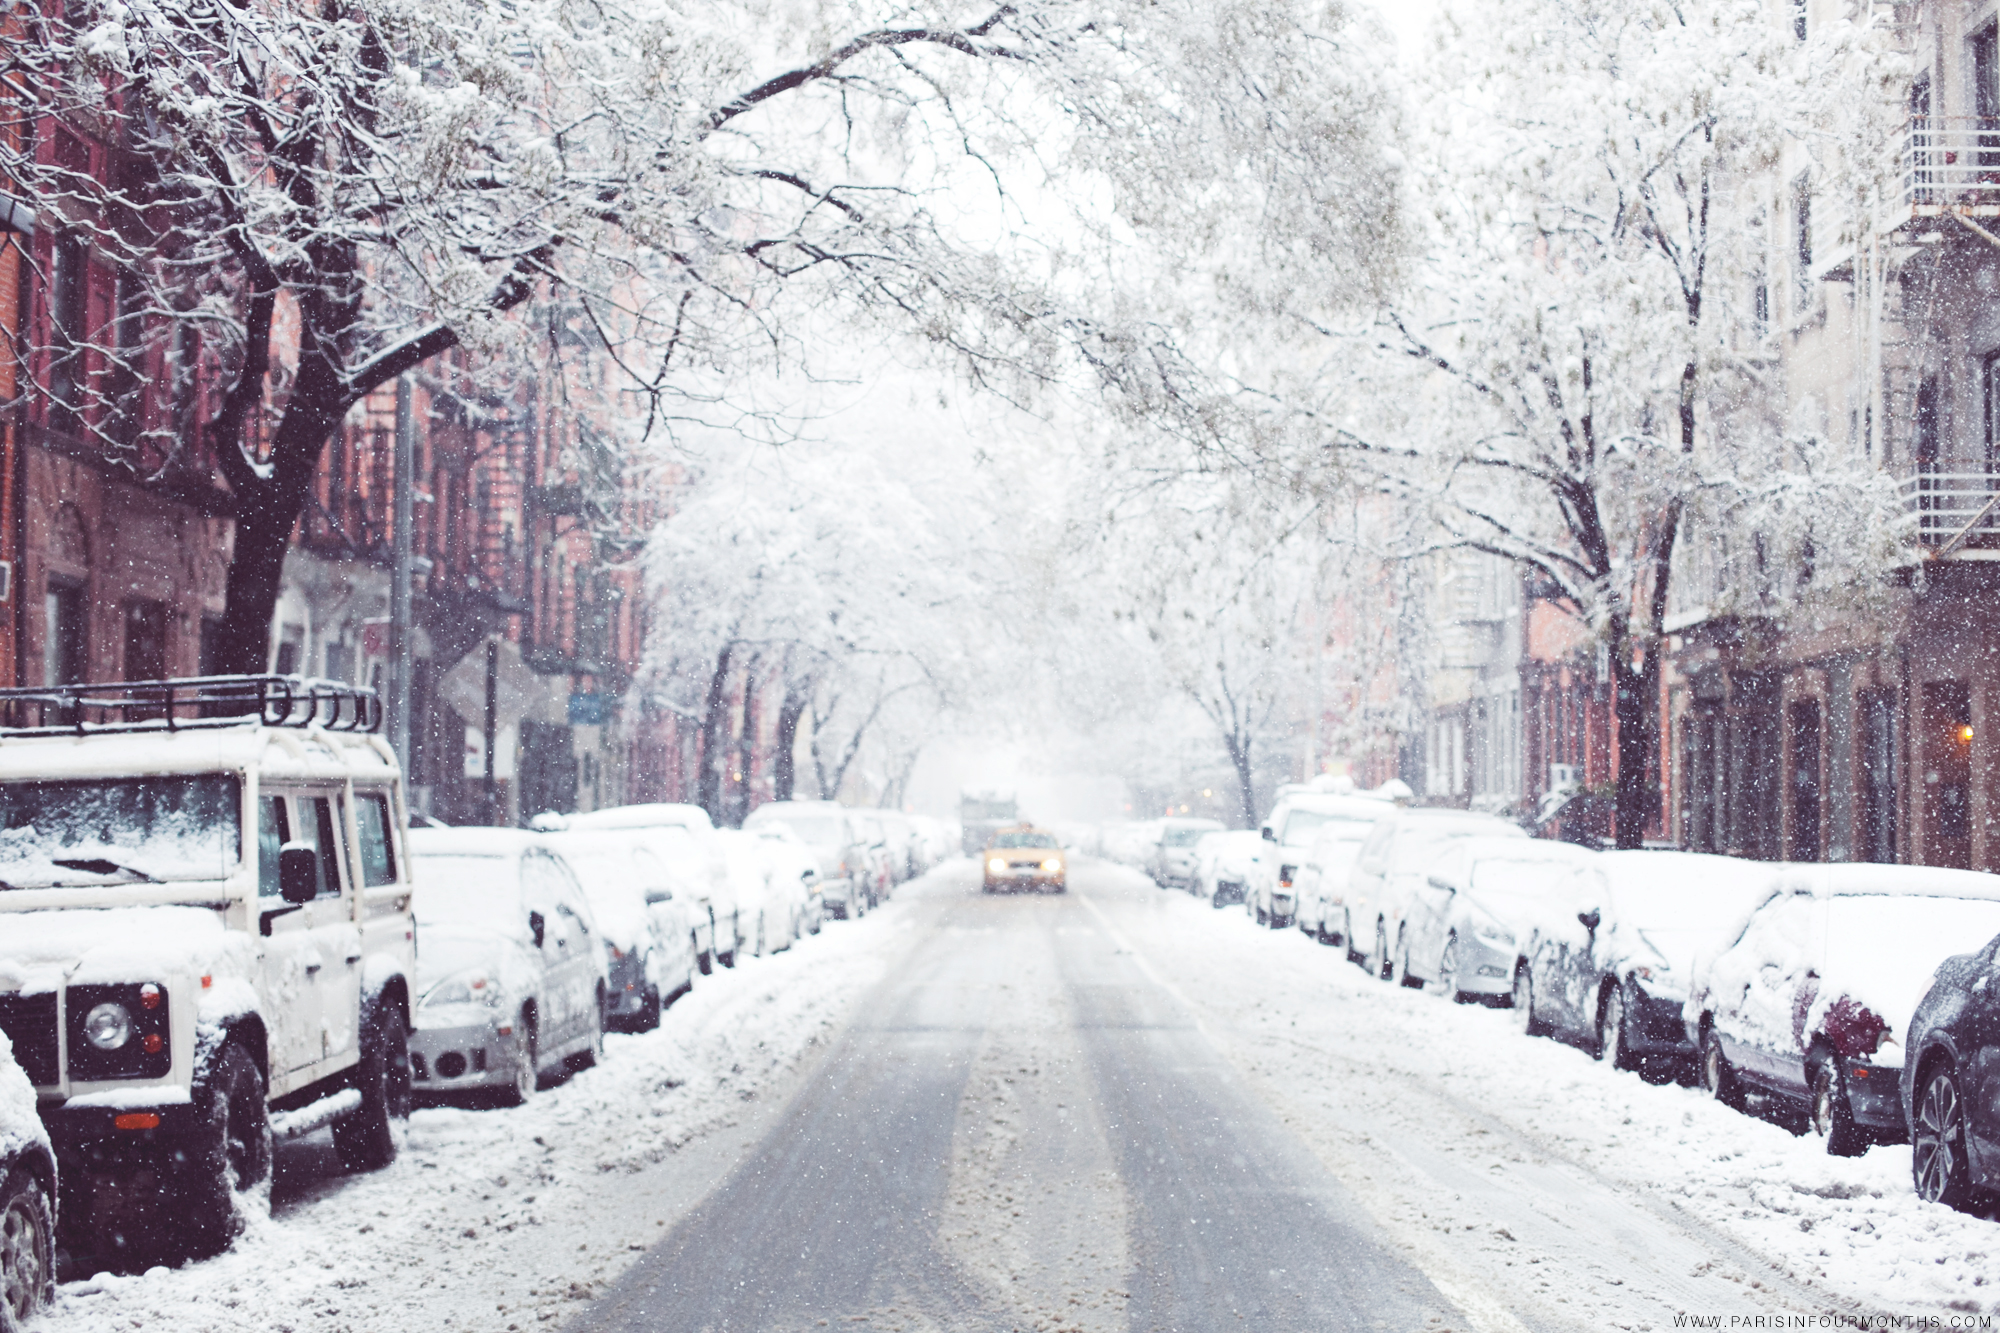 Winter Wonderland in New York City